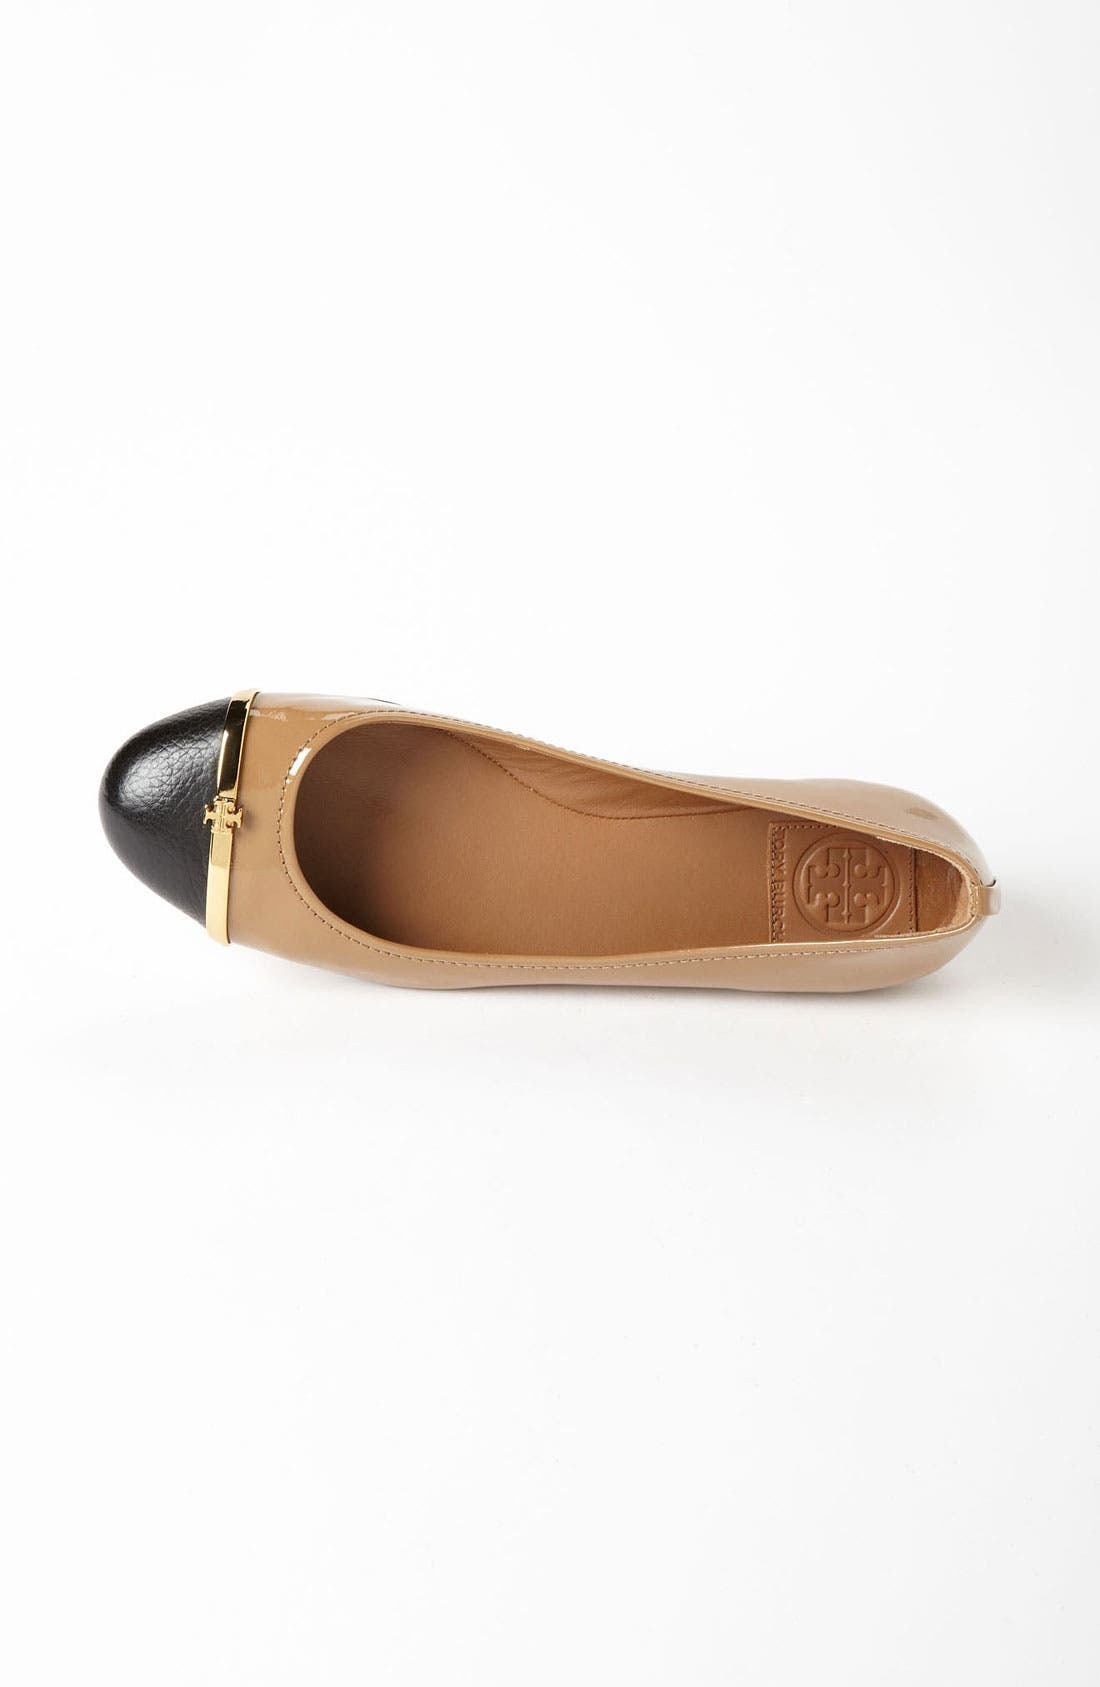 Alternate Image 3  - Tory Burch 'Pacey' Ballet Flat